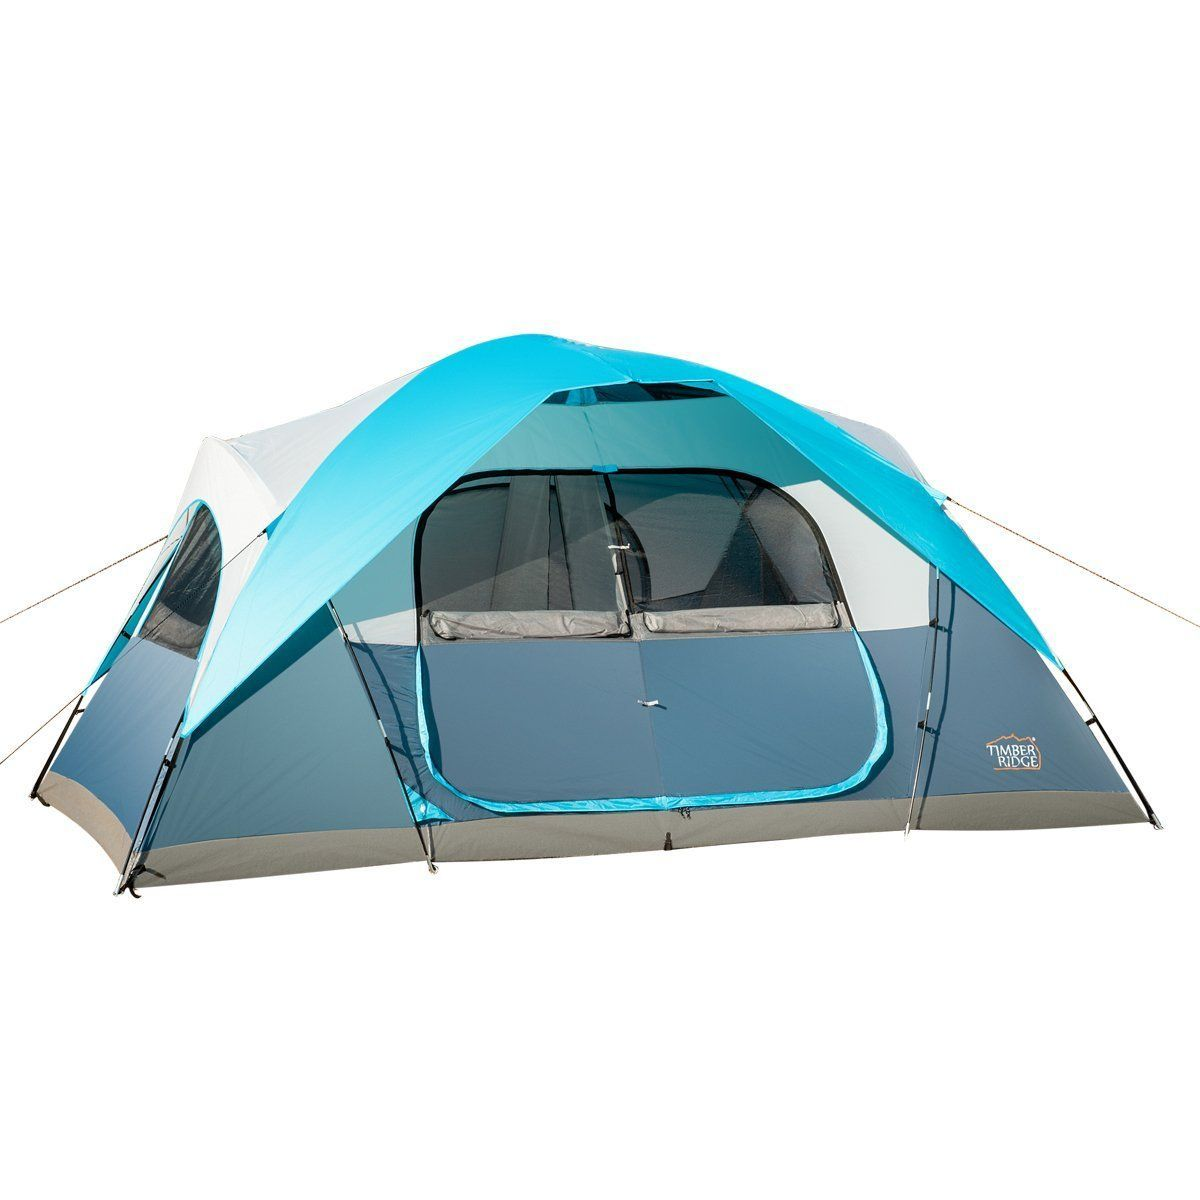 tent pop up tent tents for sale c&ing tents coleman tents c&ing gear c&ing equipment c&ing stove c&ing store canvas tents c&ing tent c&ing ...  sc 1 st  Pinterest & tent pop up tent tents for sale camping tents coleman tents ...